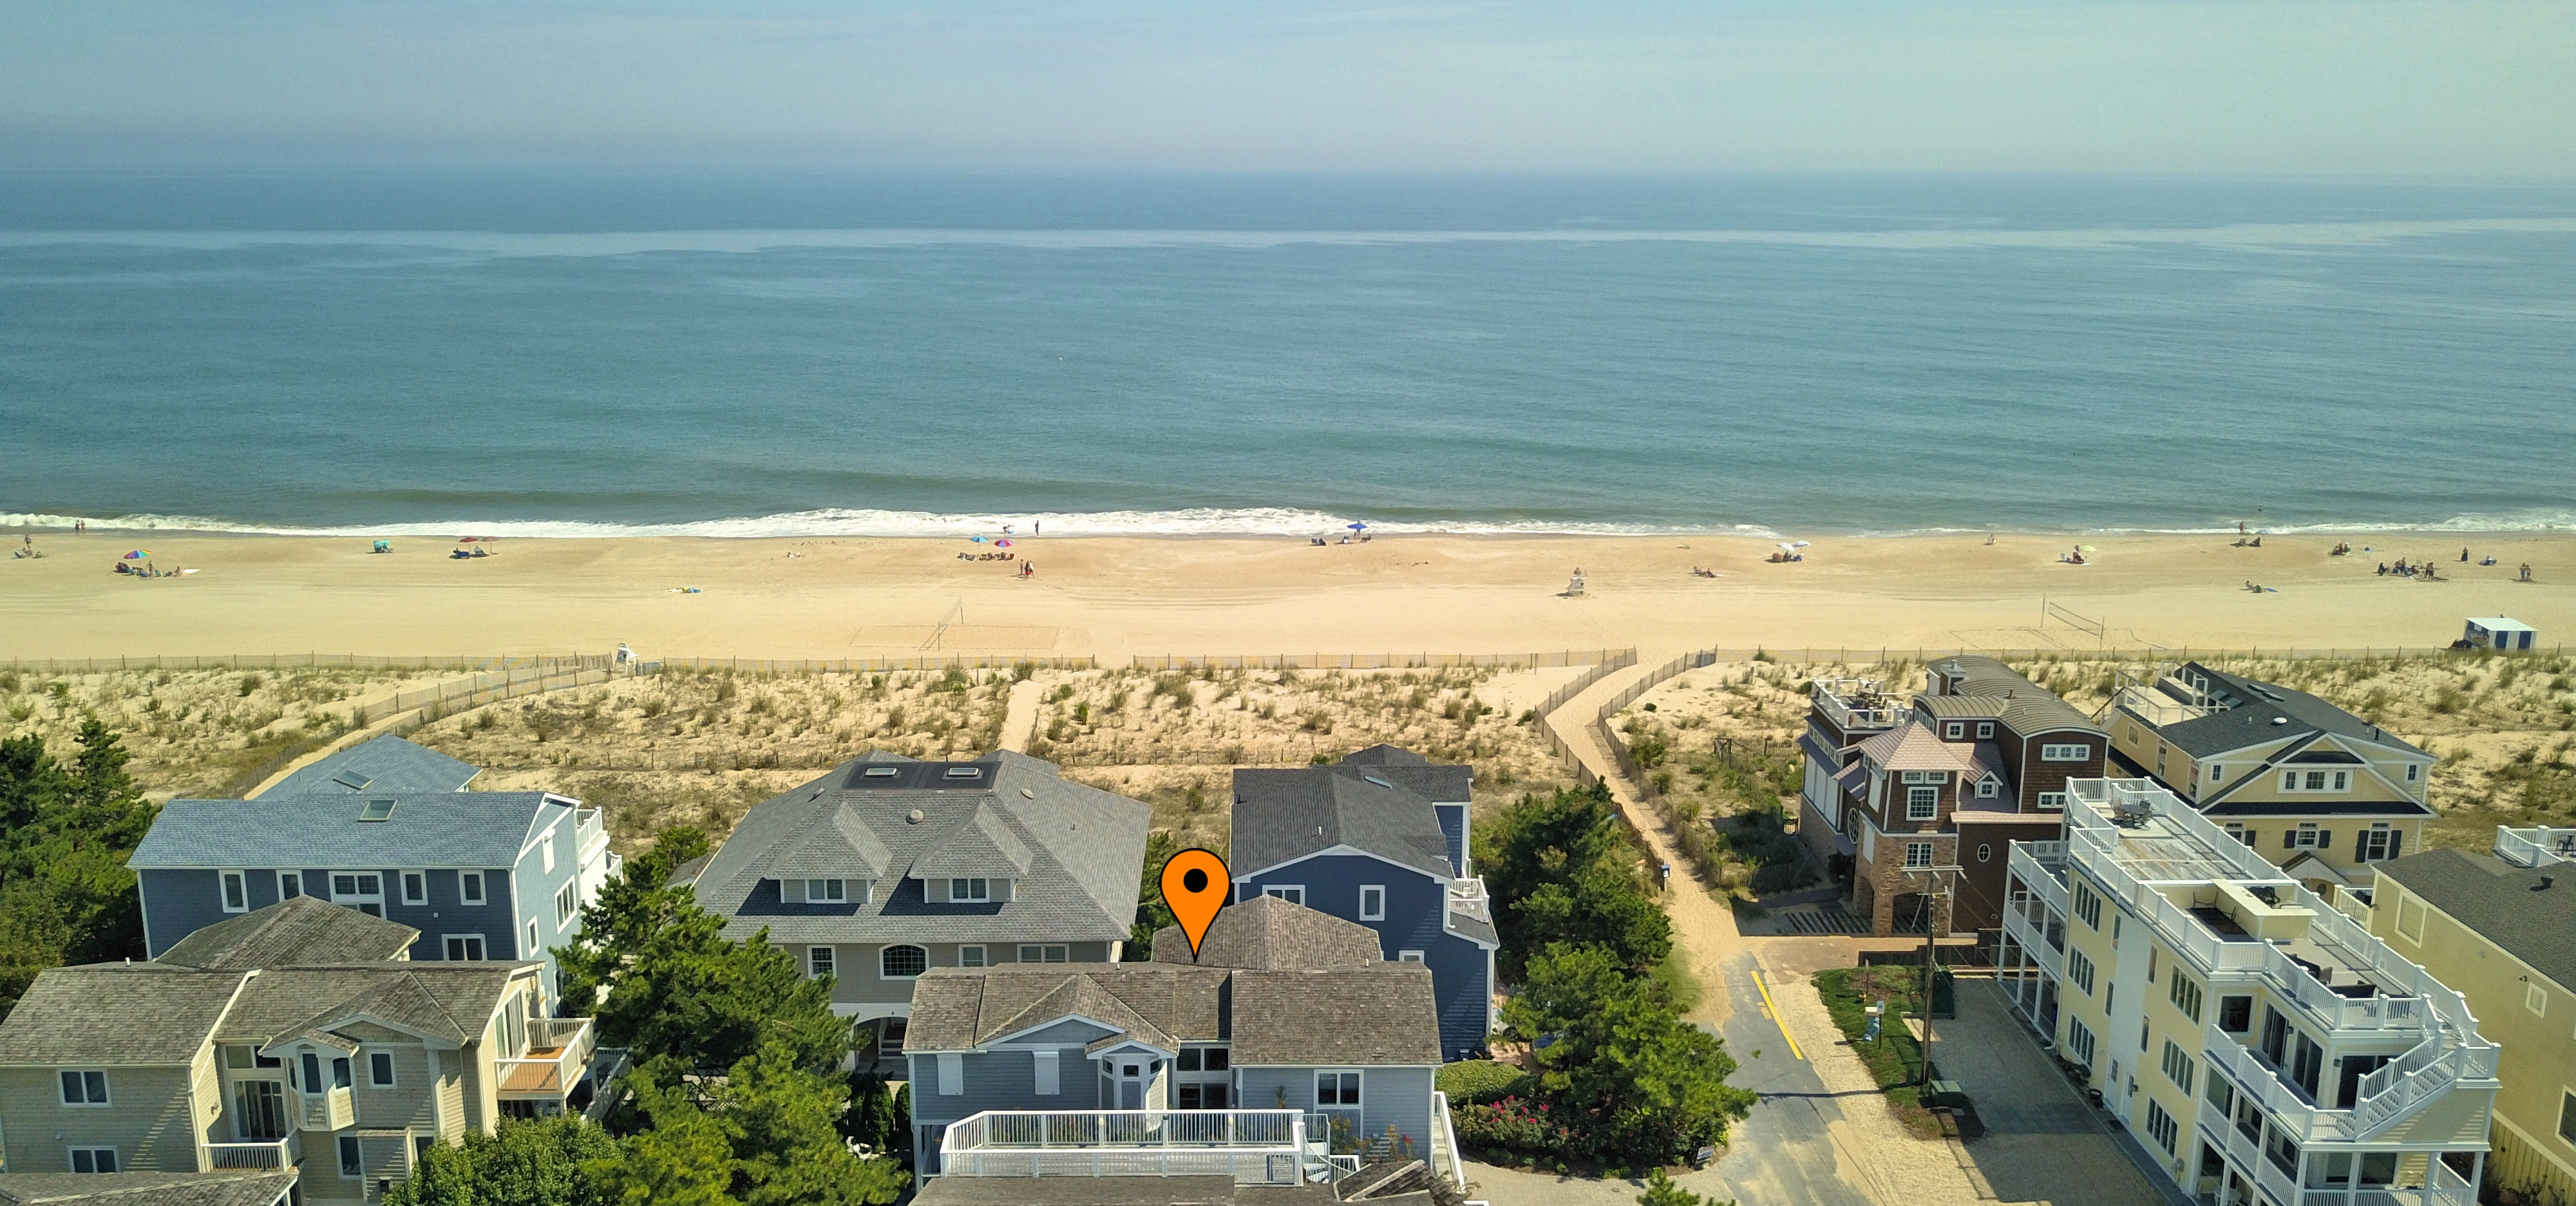 9 Houston Street, Dewey Beach :   $2,250,000